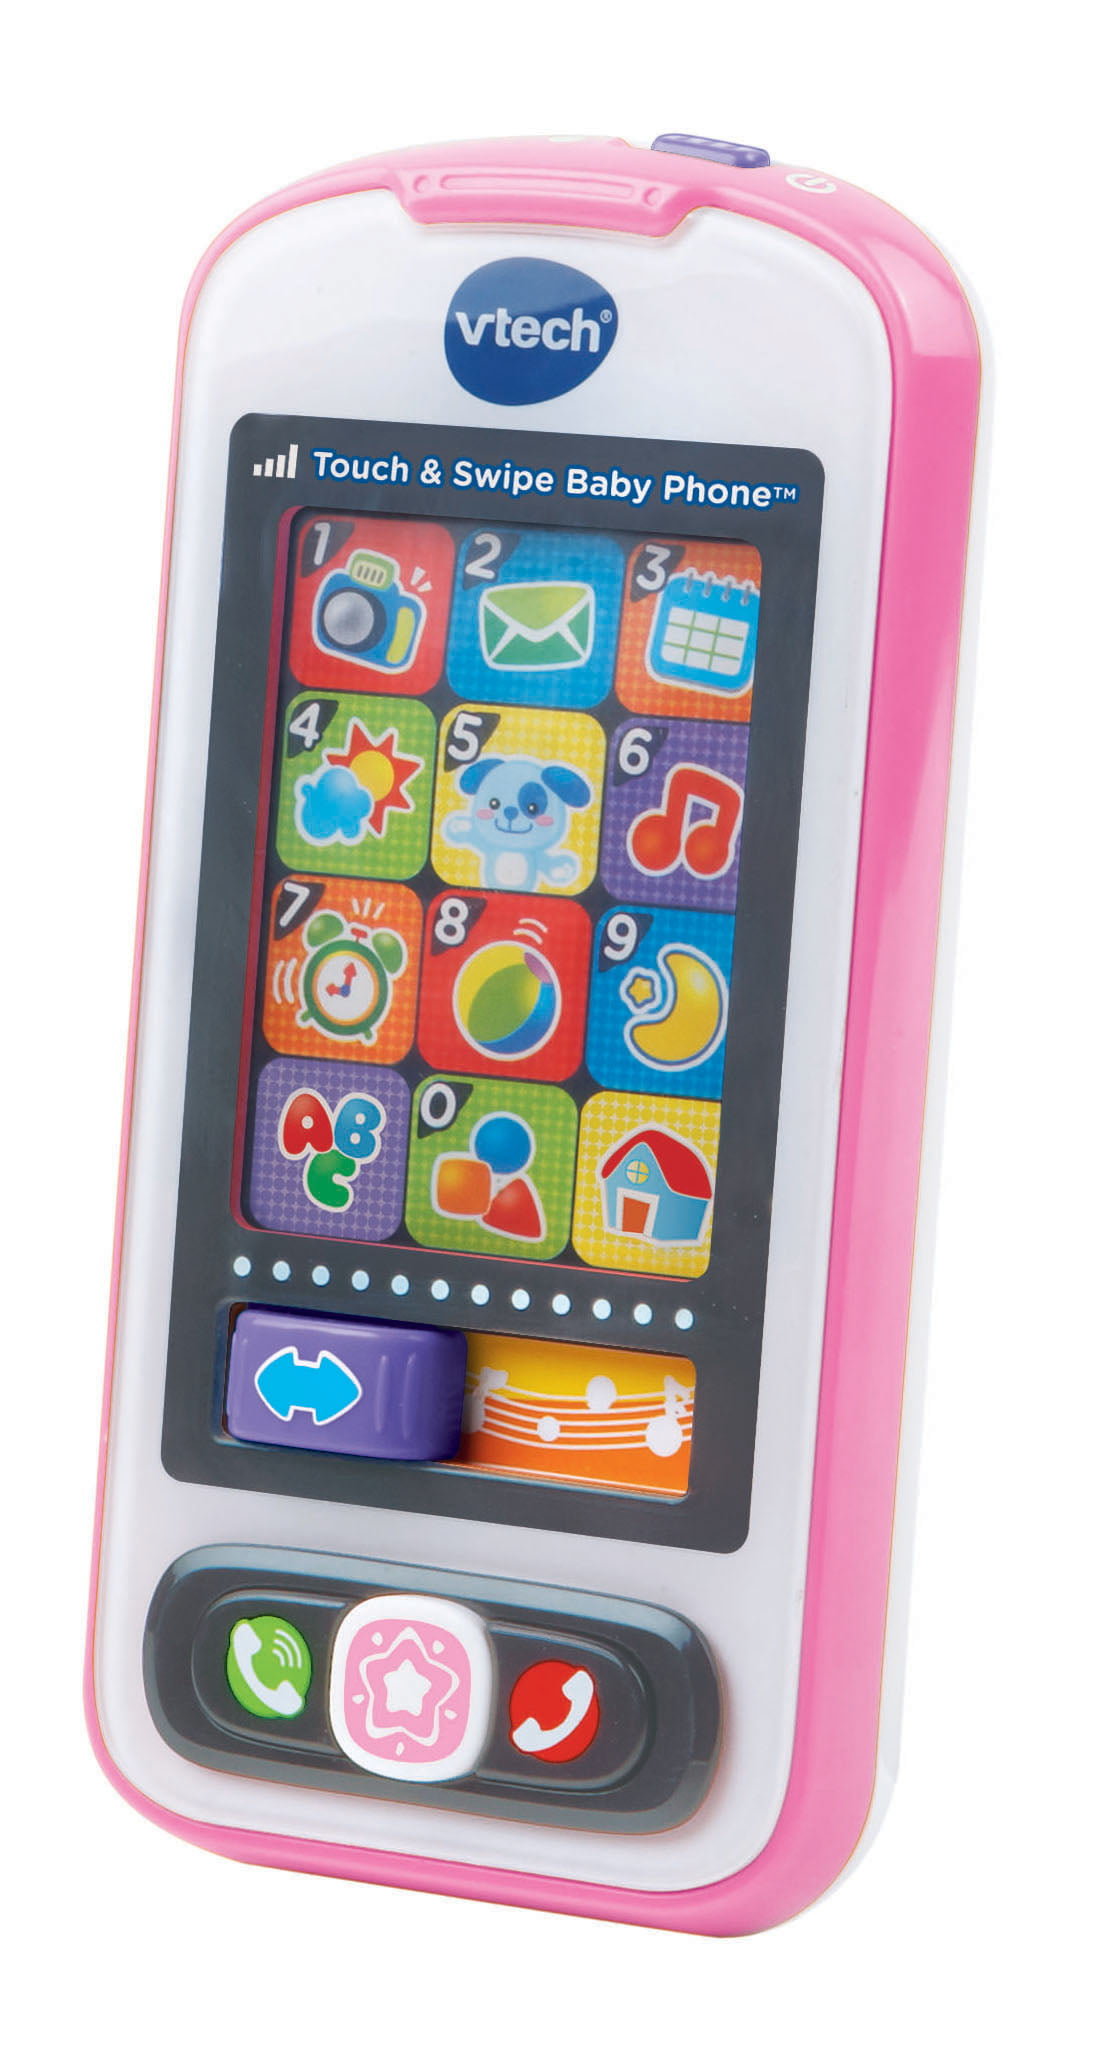 Vtech Pink Cell Phone